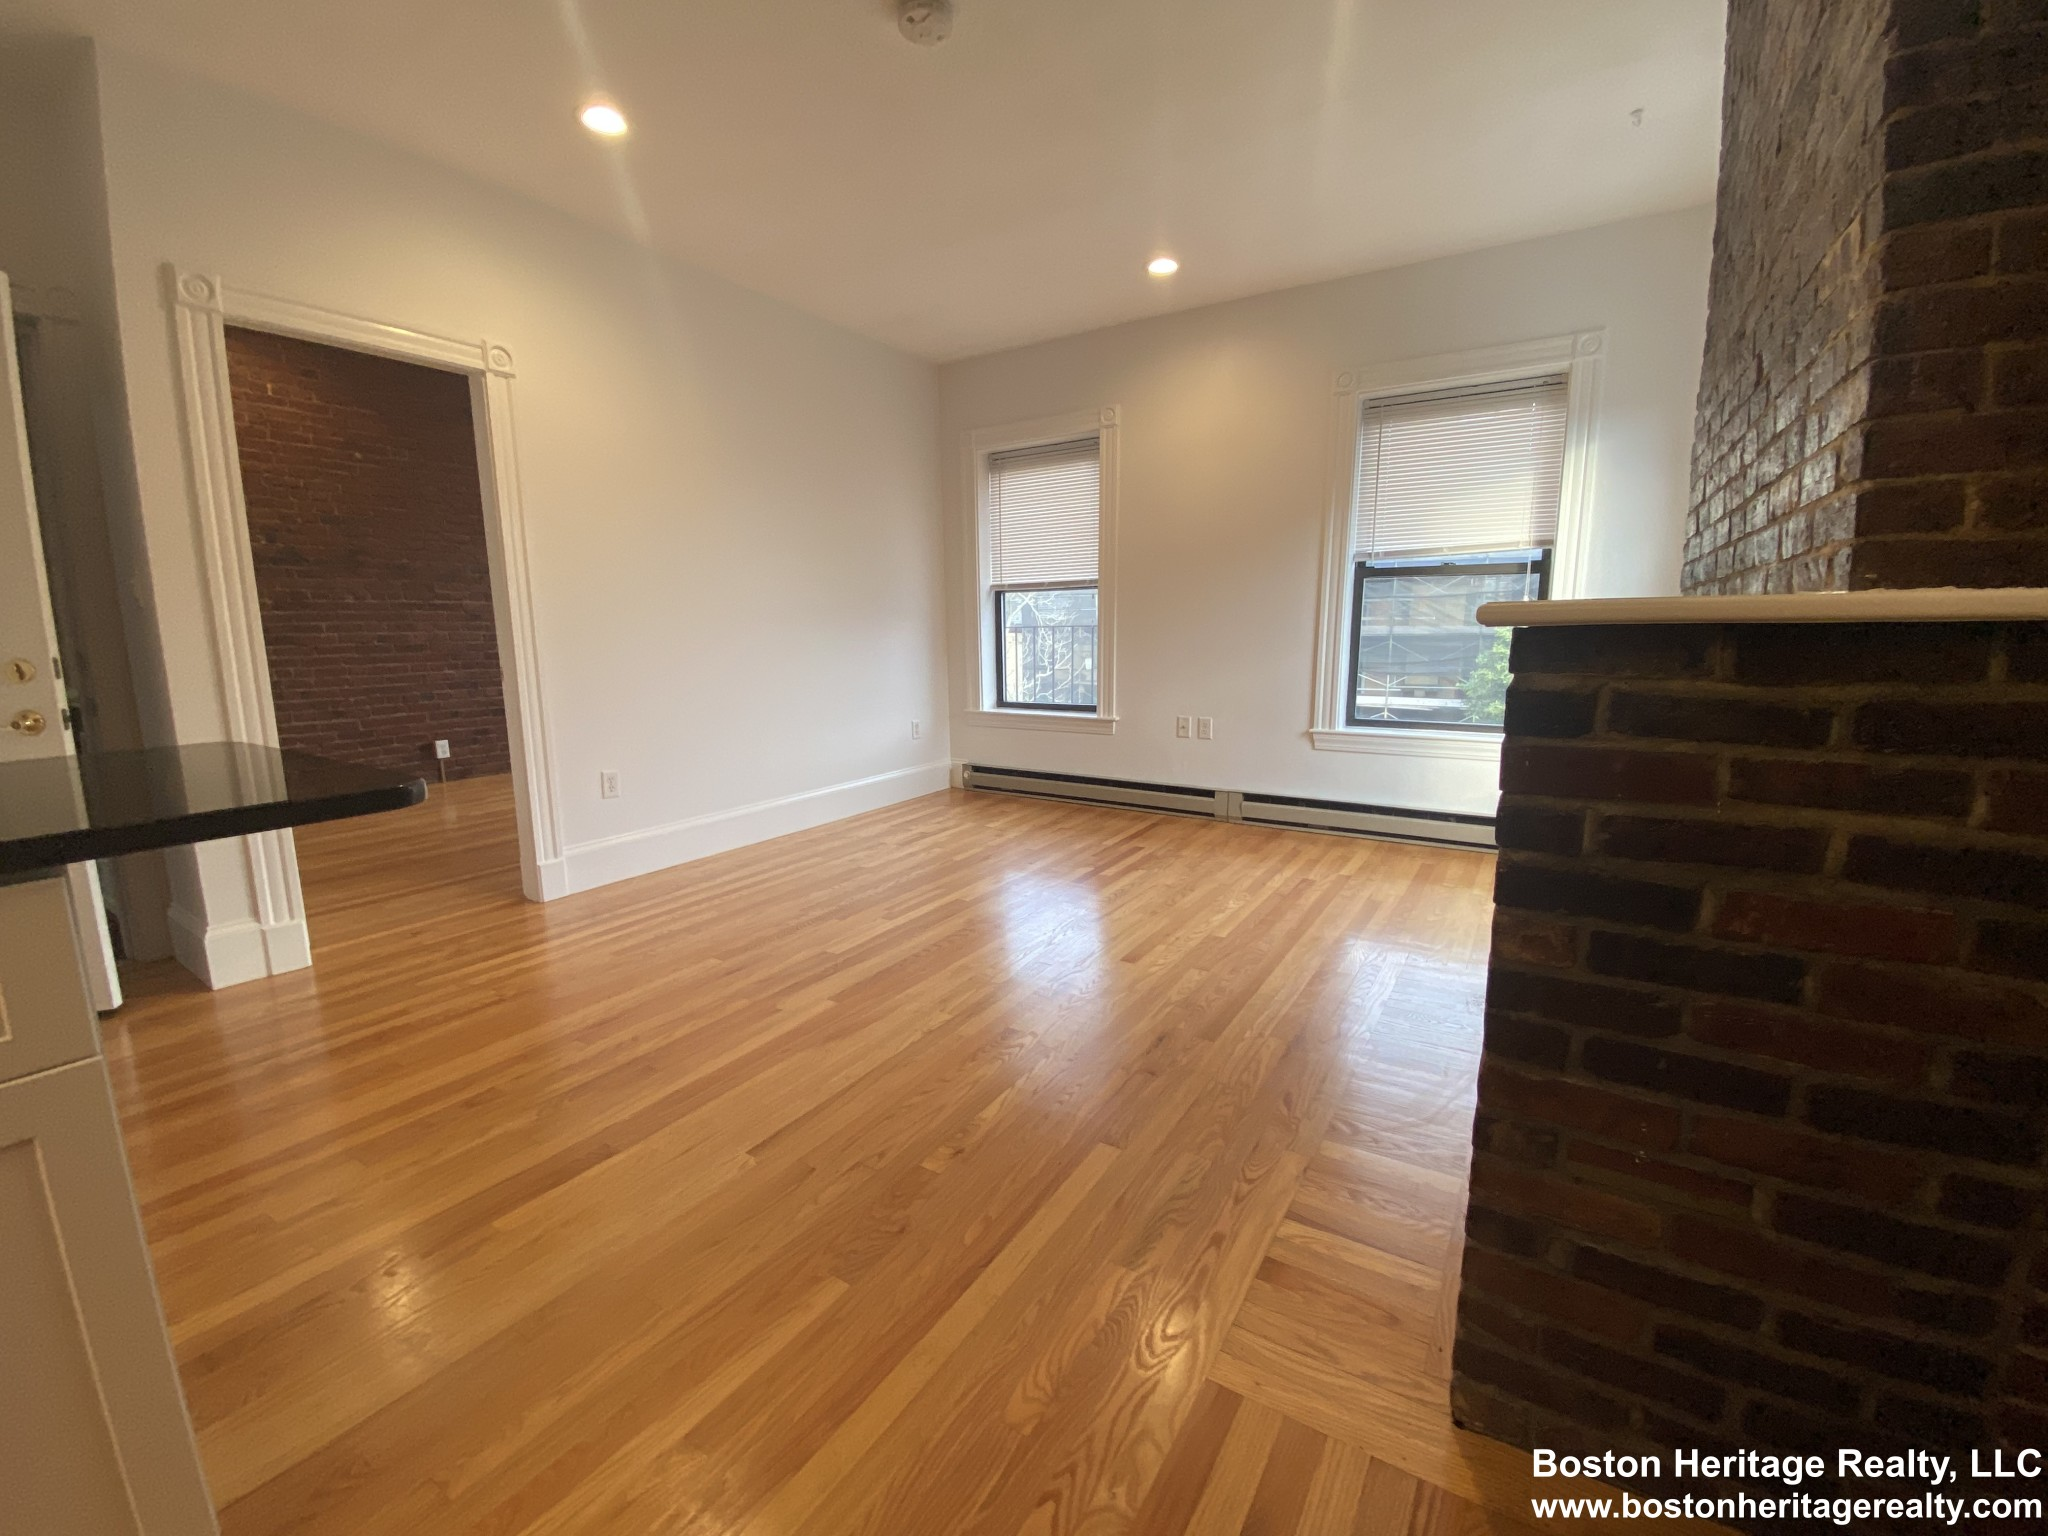 1 Bed, 1 Bath apartment in Boston, South End for $2,000